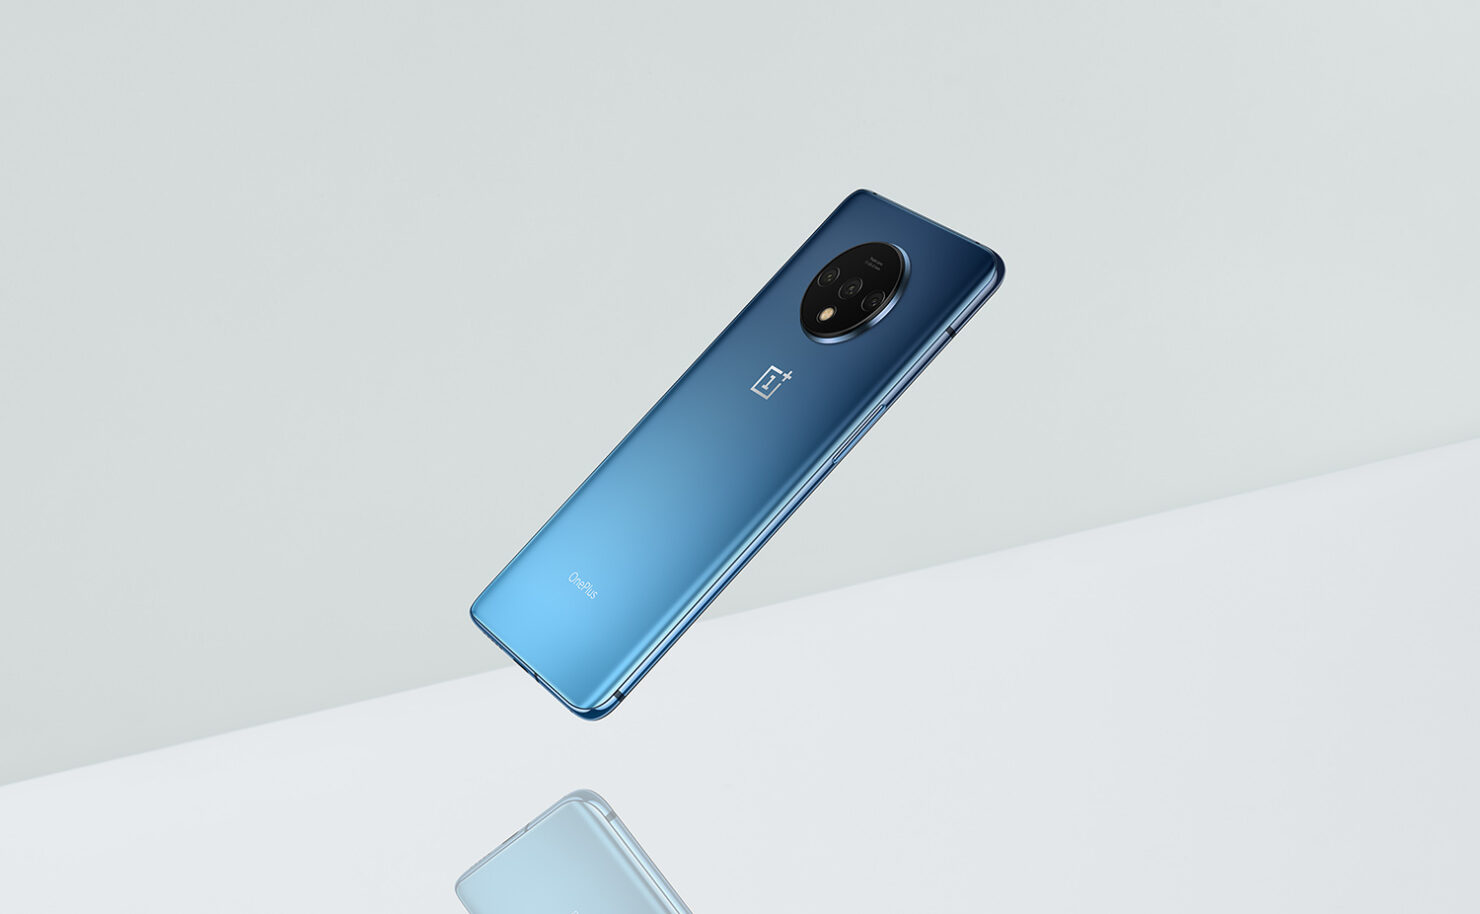 oneplus-7t-official-image-2-2